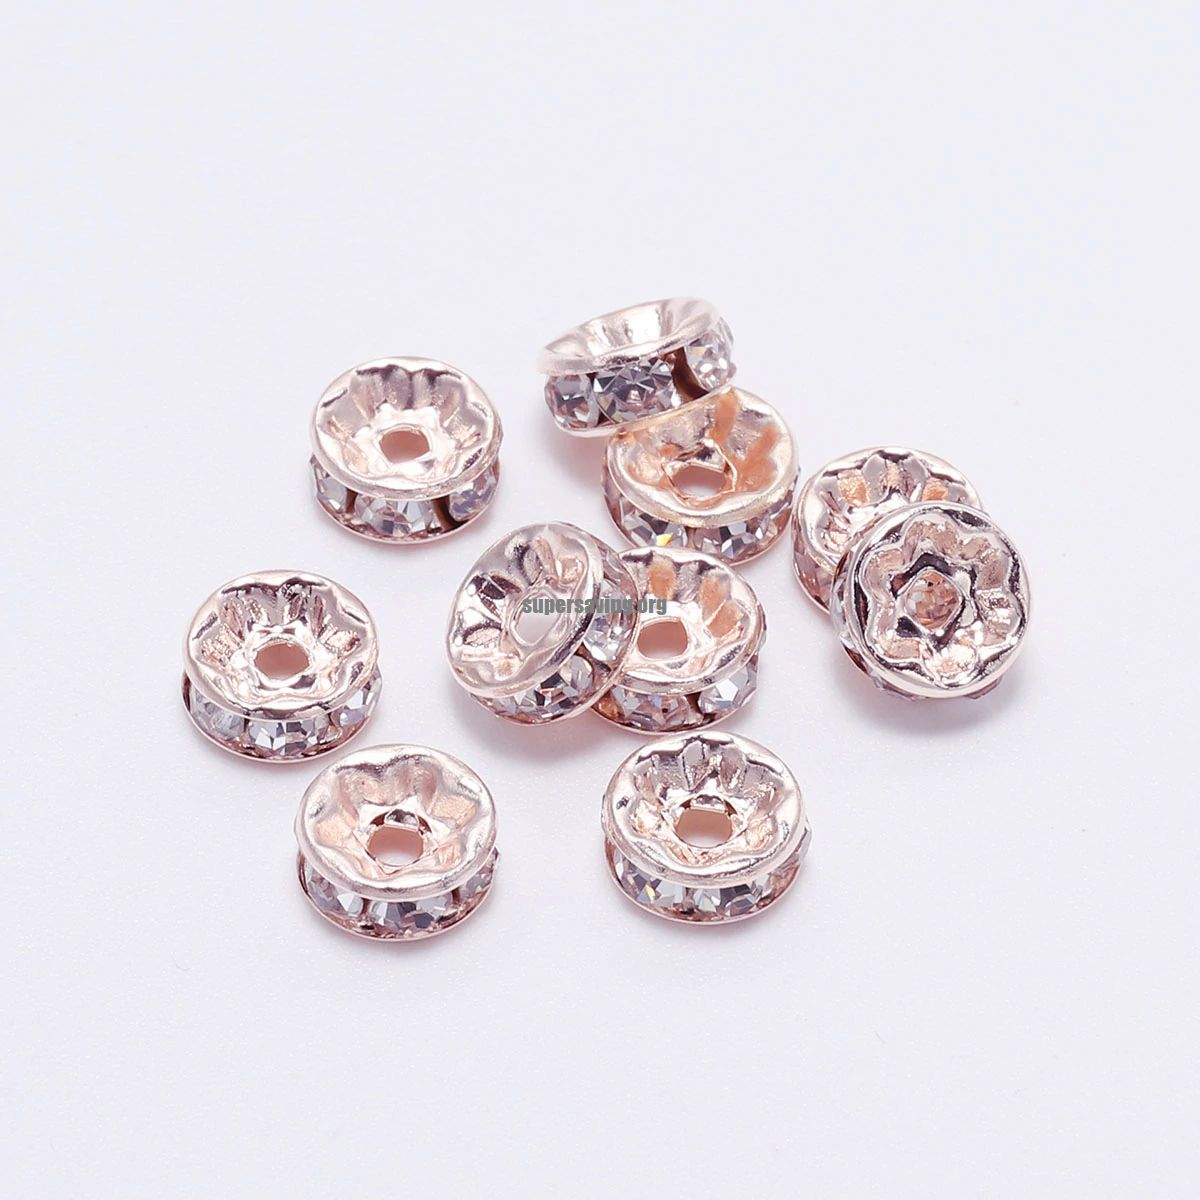 50pcs lot 4 6 8 10mm Gold Silver Rhinestone Rondelles Crystal Bead Loose Spacer Beads for DIY Jewelry Making Accessories Supplie